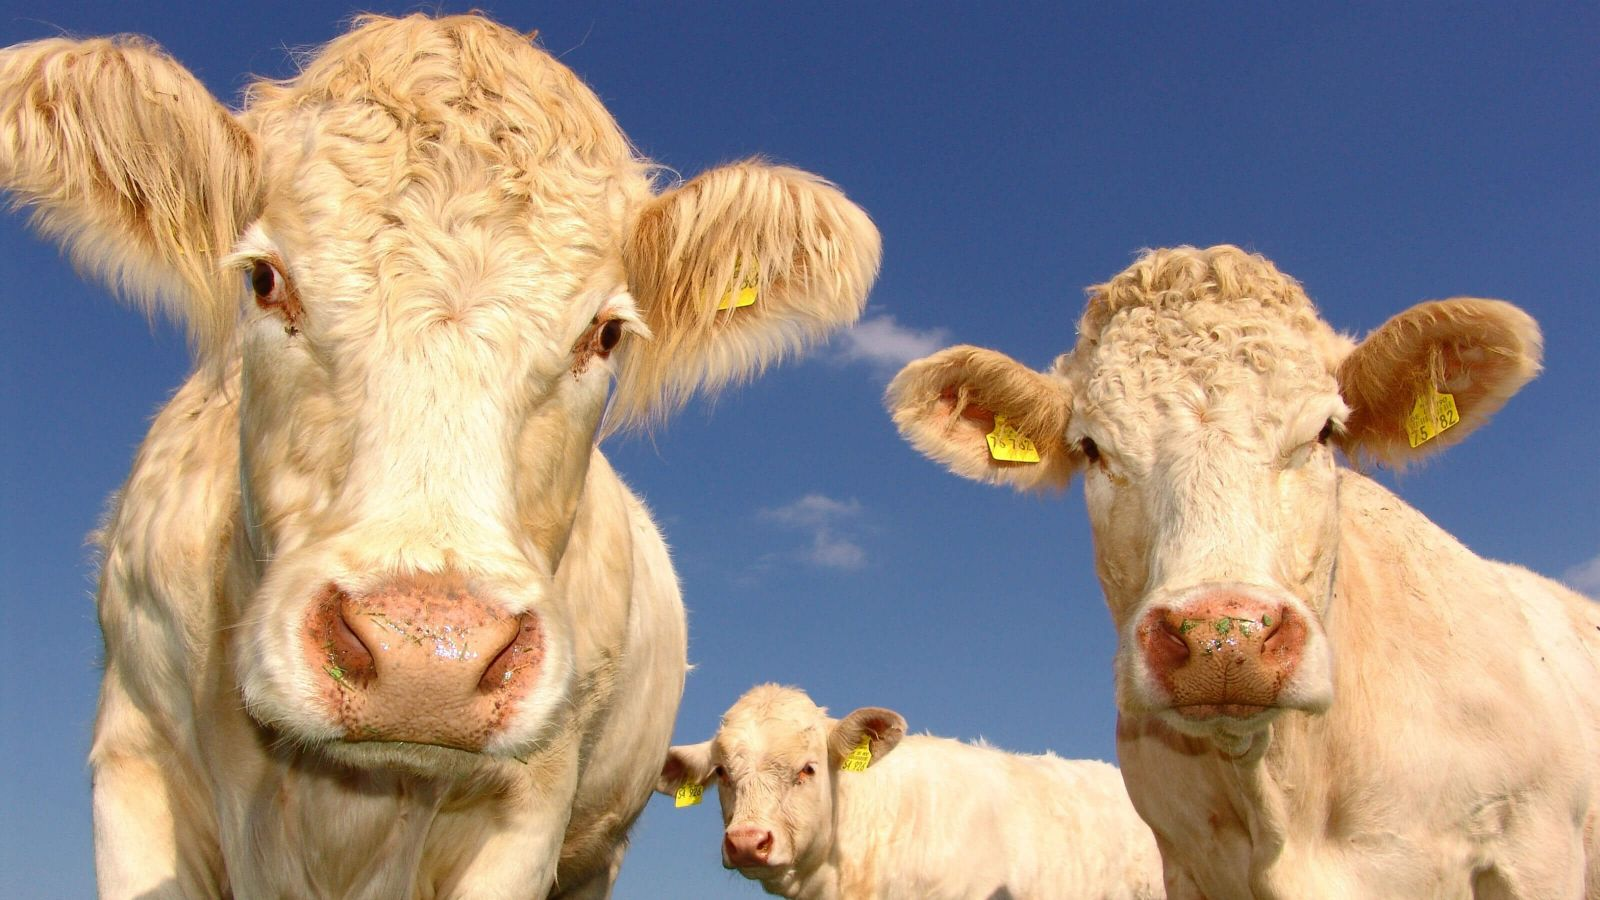 Three hornless blonde cows with wet grassy snouts peer into the camera.